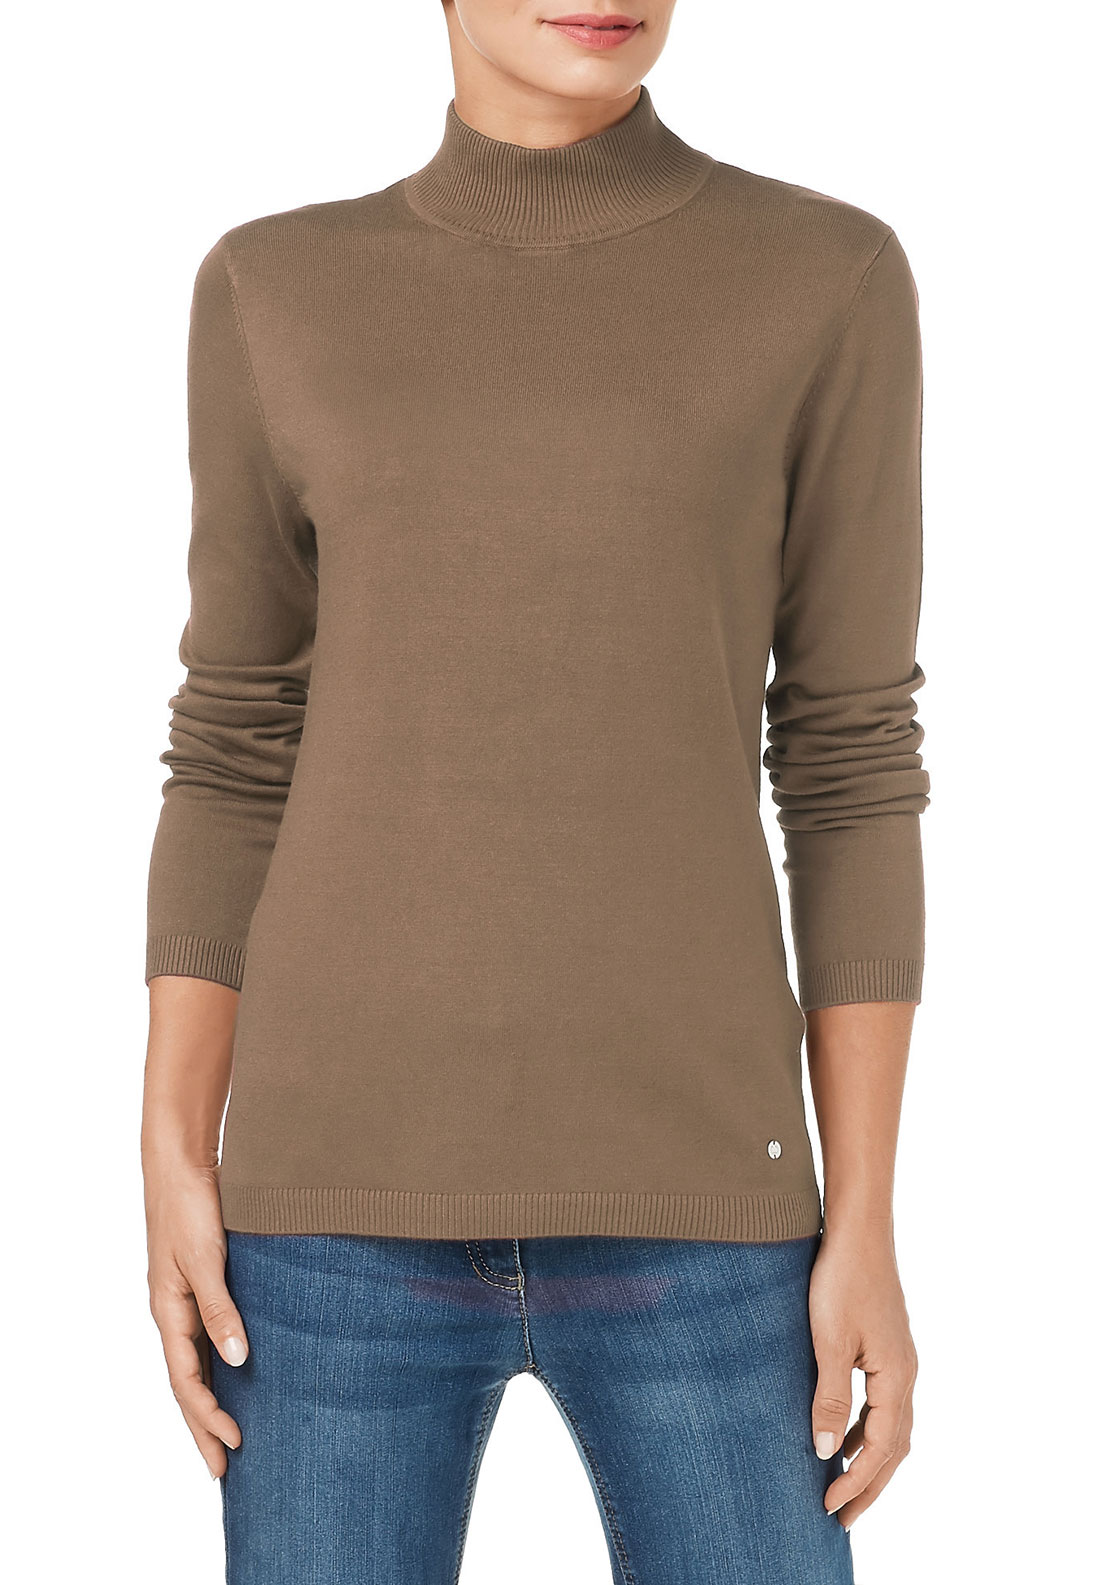 Gerry Weber High Neck Sweater, Beige